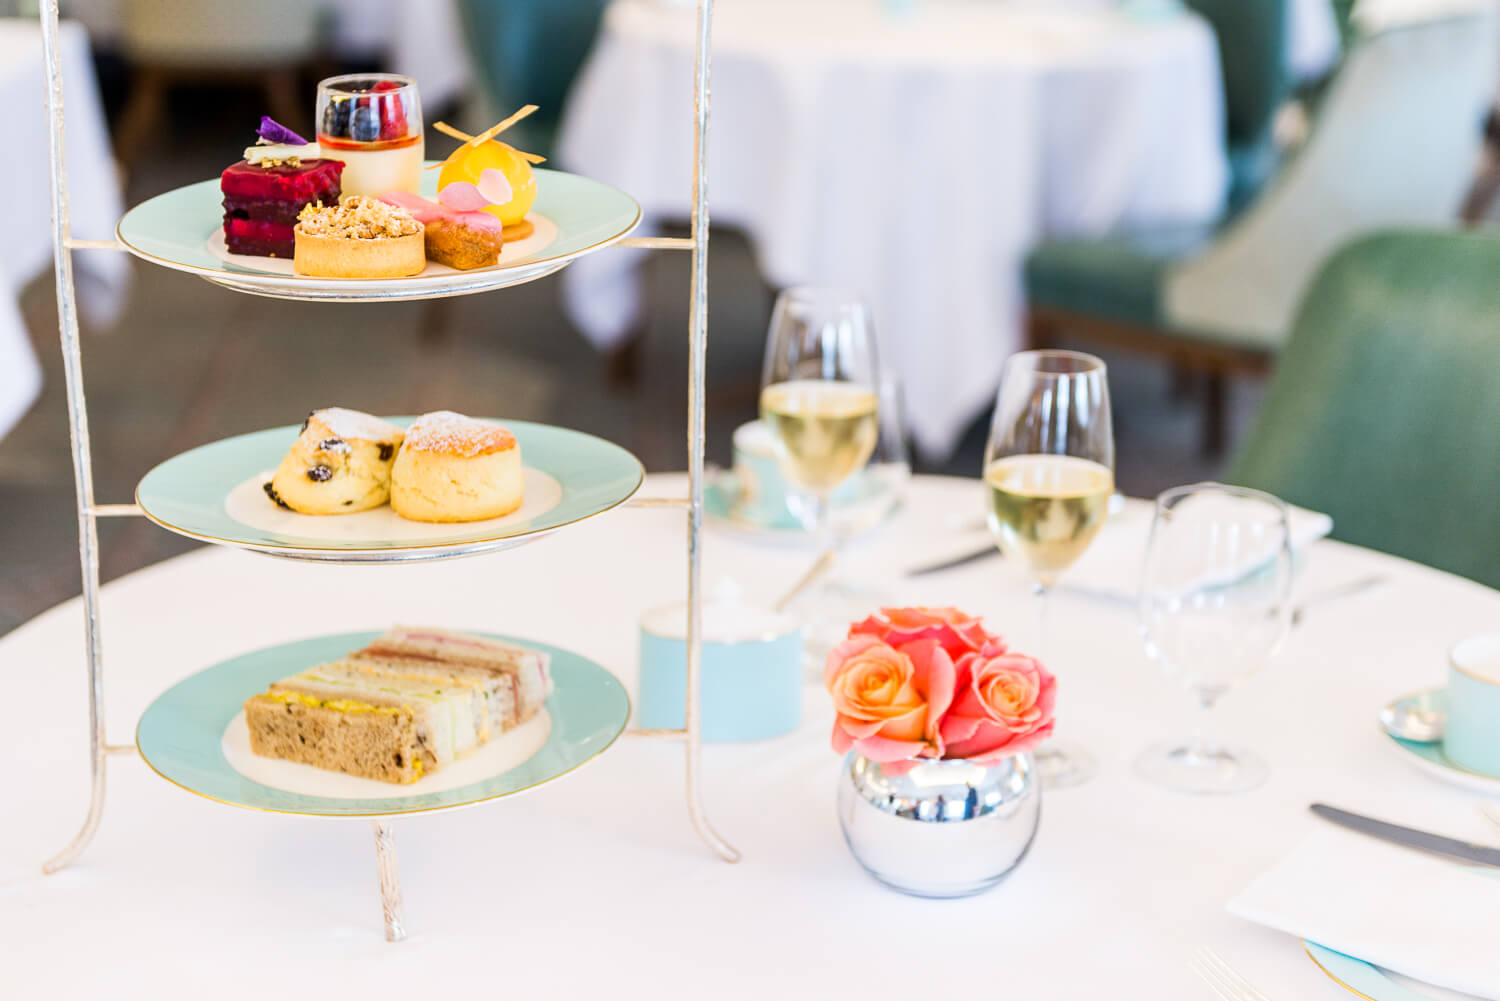 Mother's Day Afternoon Teas in London, Mother's Day Afternoon Teas in London, best Mother's Day Afternoon Teas in London, afternoon teas in London, mother's day in london, mother's day in london 2017, mother's day 2017, afternoon teas for mums